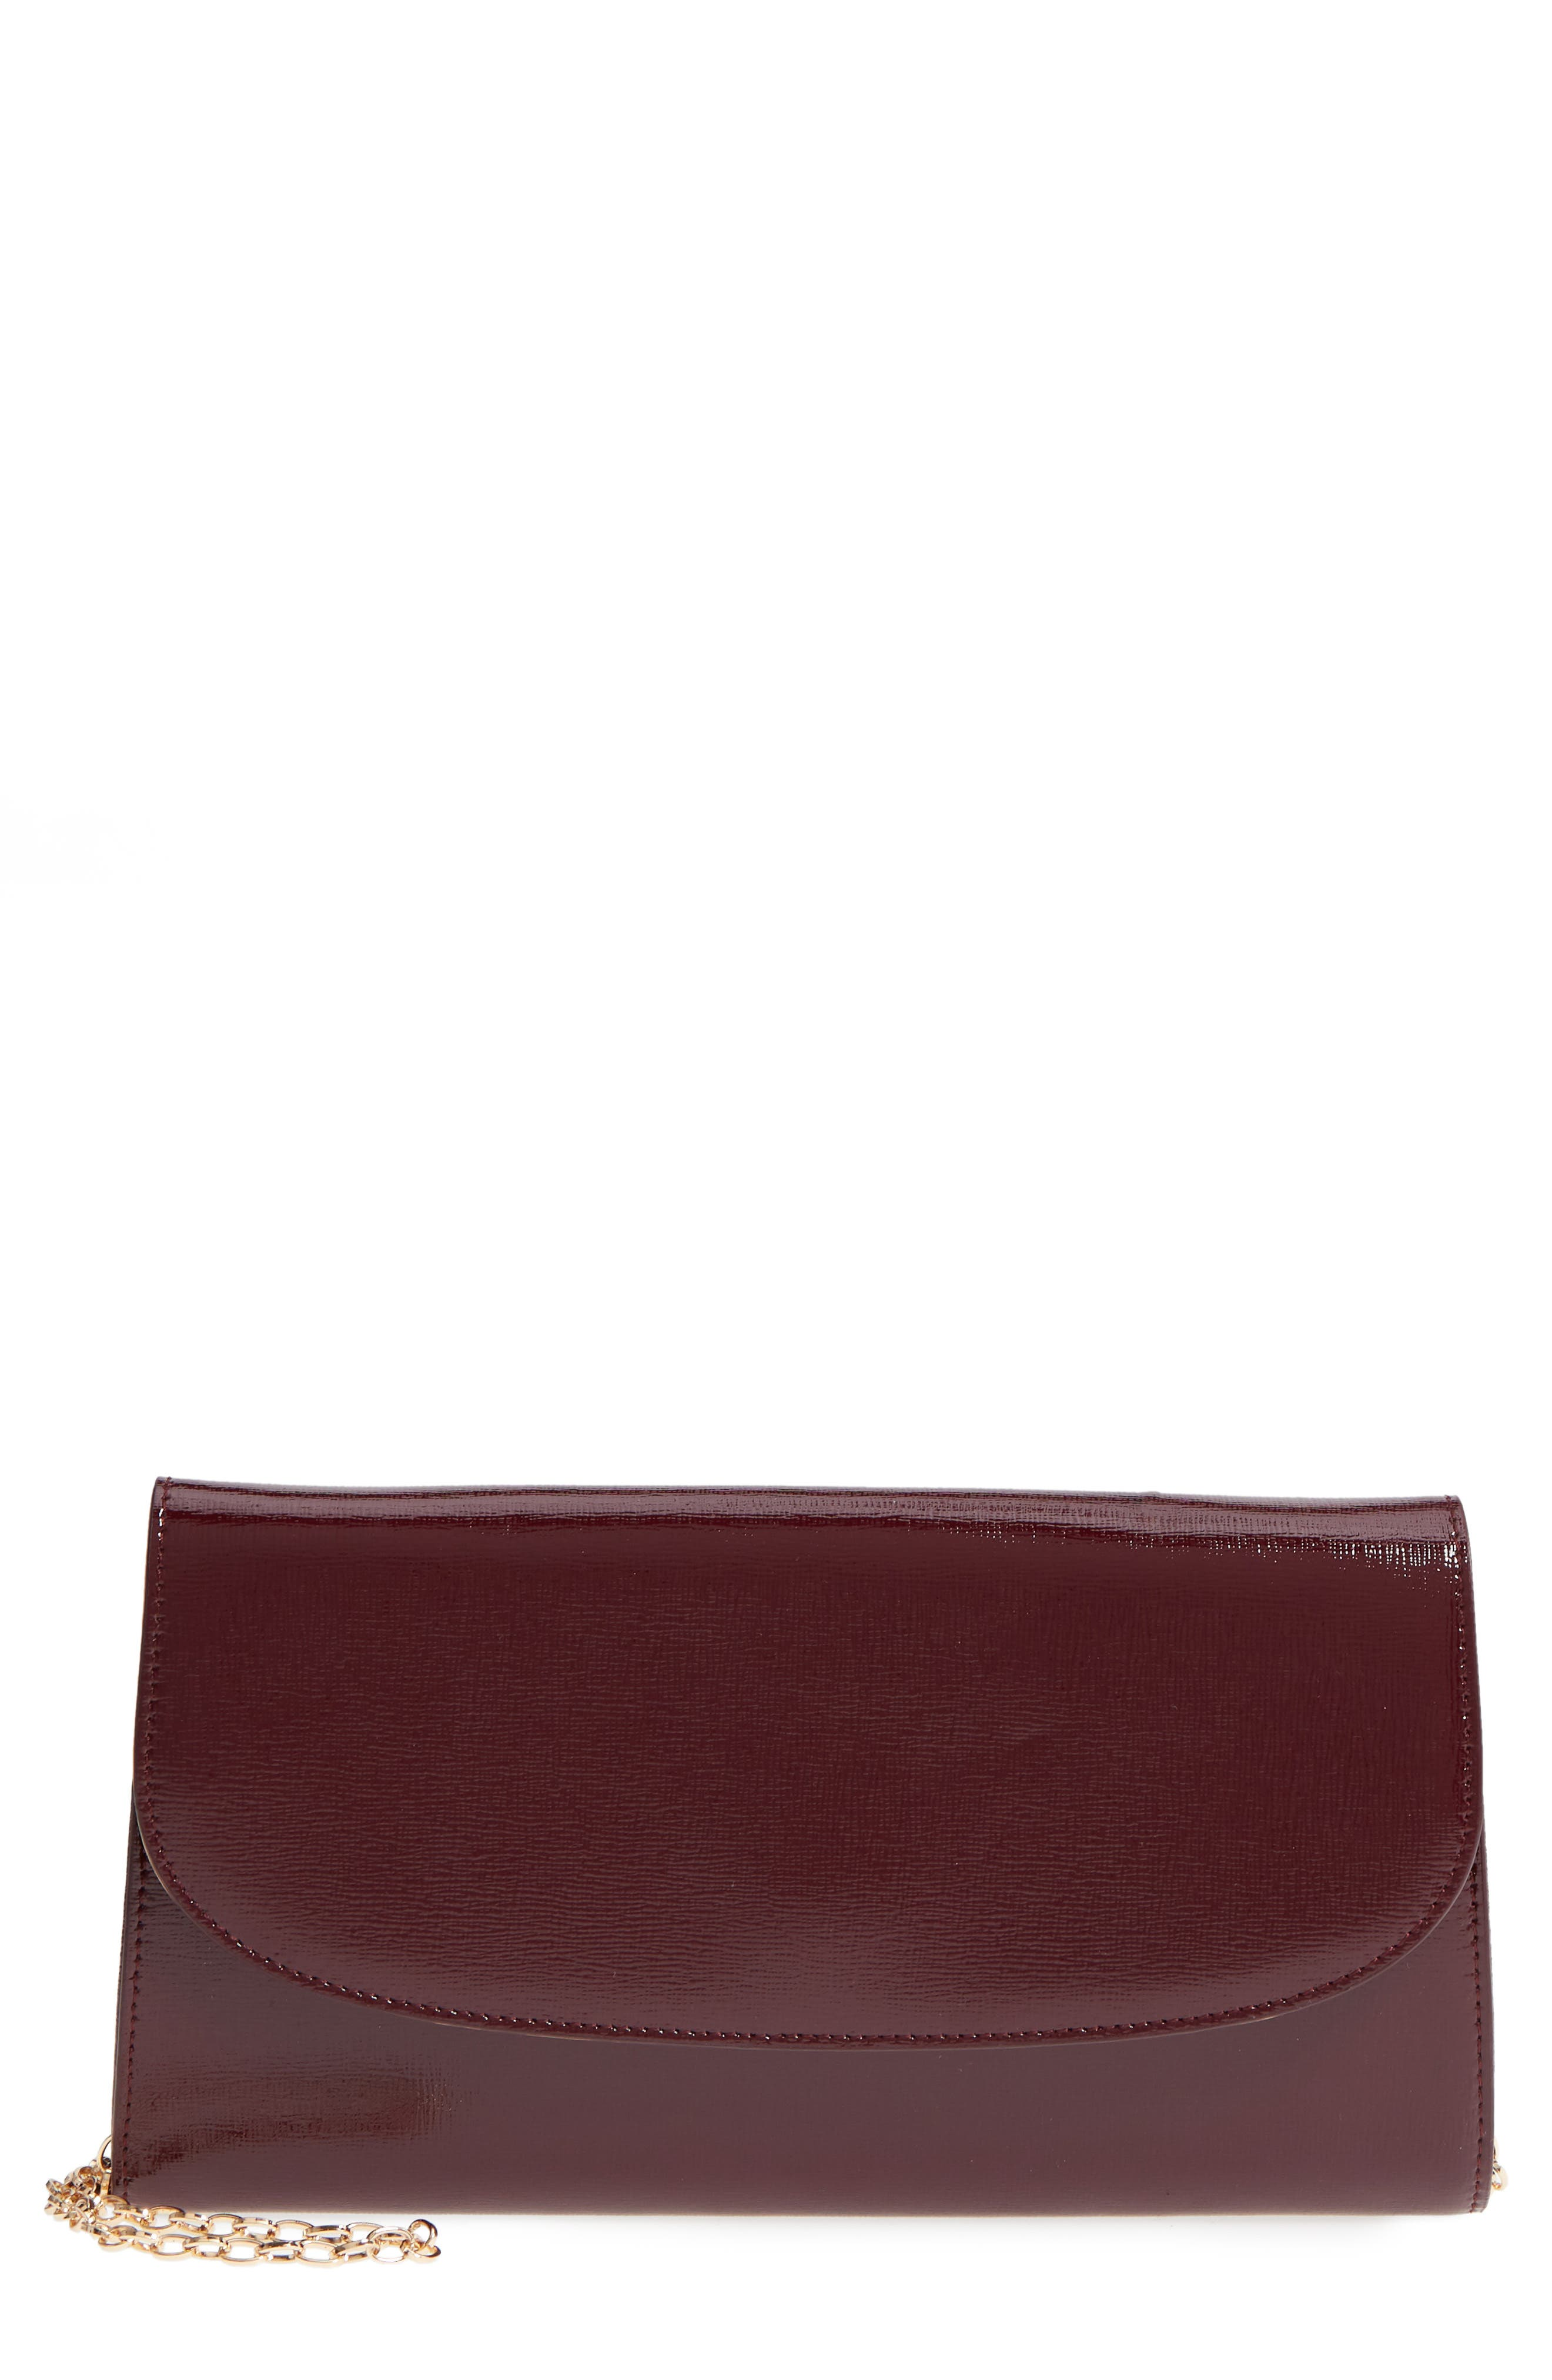 NORDSTROM, Leather Clutch, Main thumbnail 1, color, BURGUNDY ROYALE